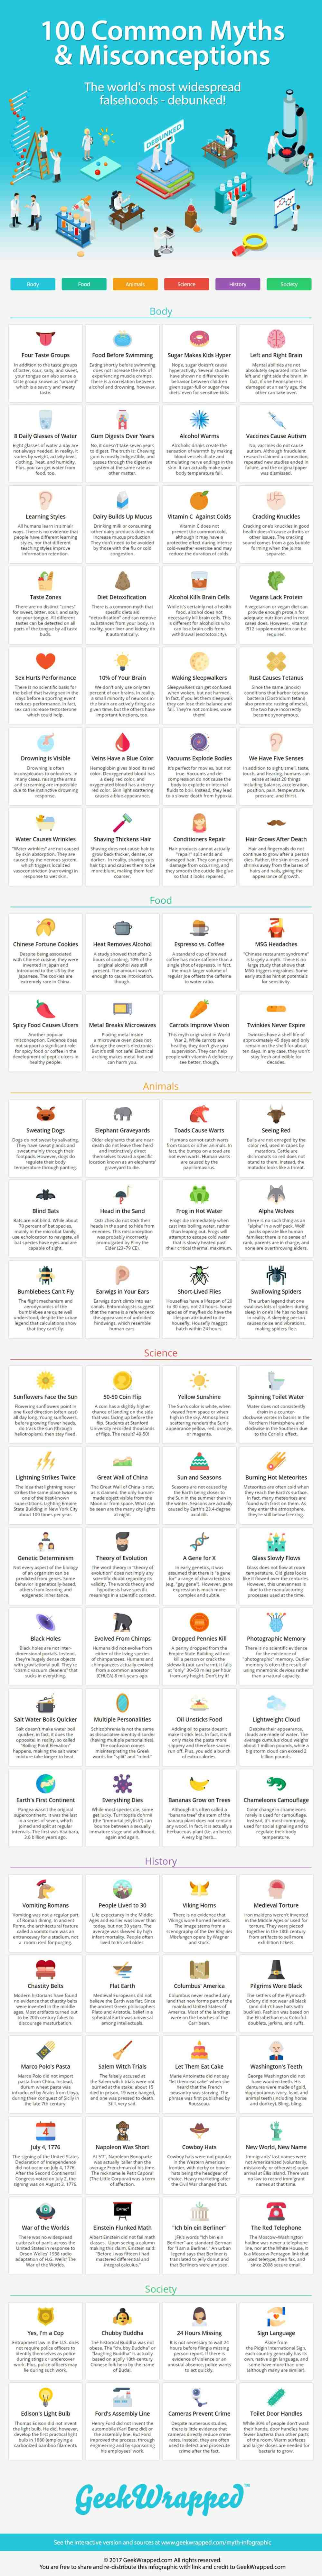 medium resolution of 100 common myths and misconceptions